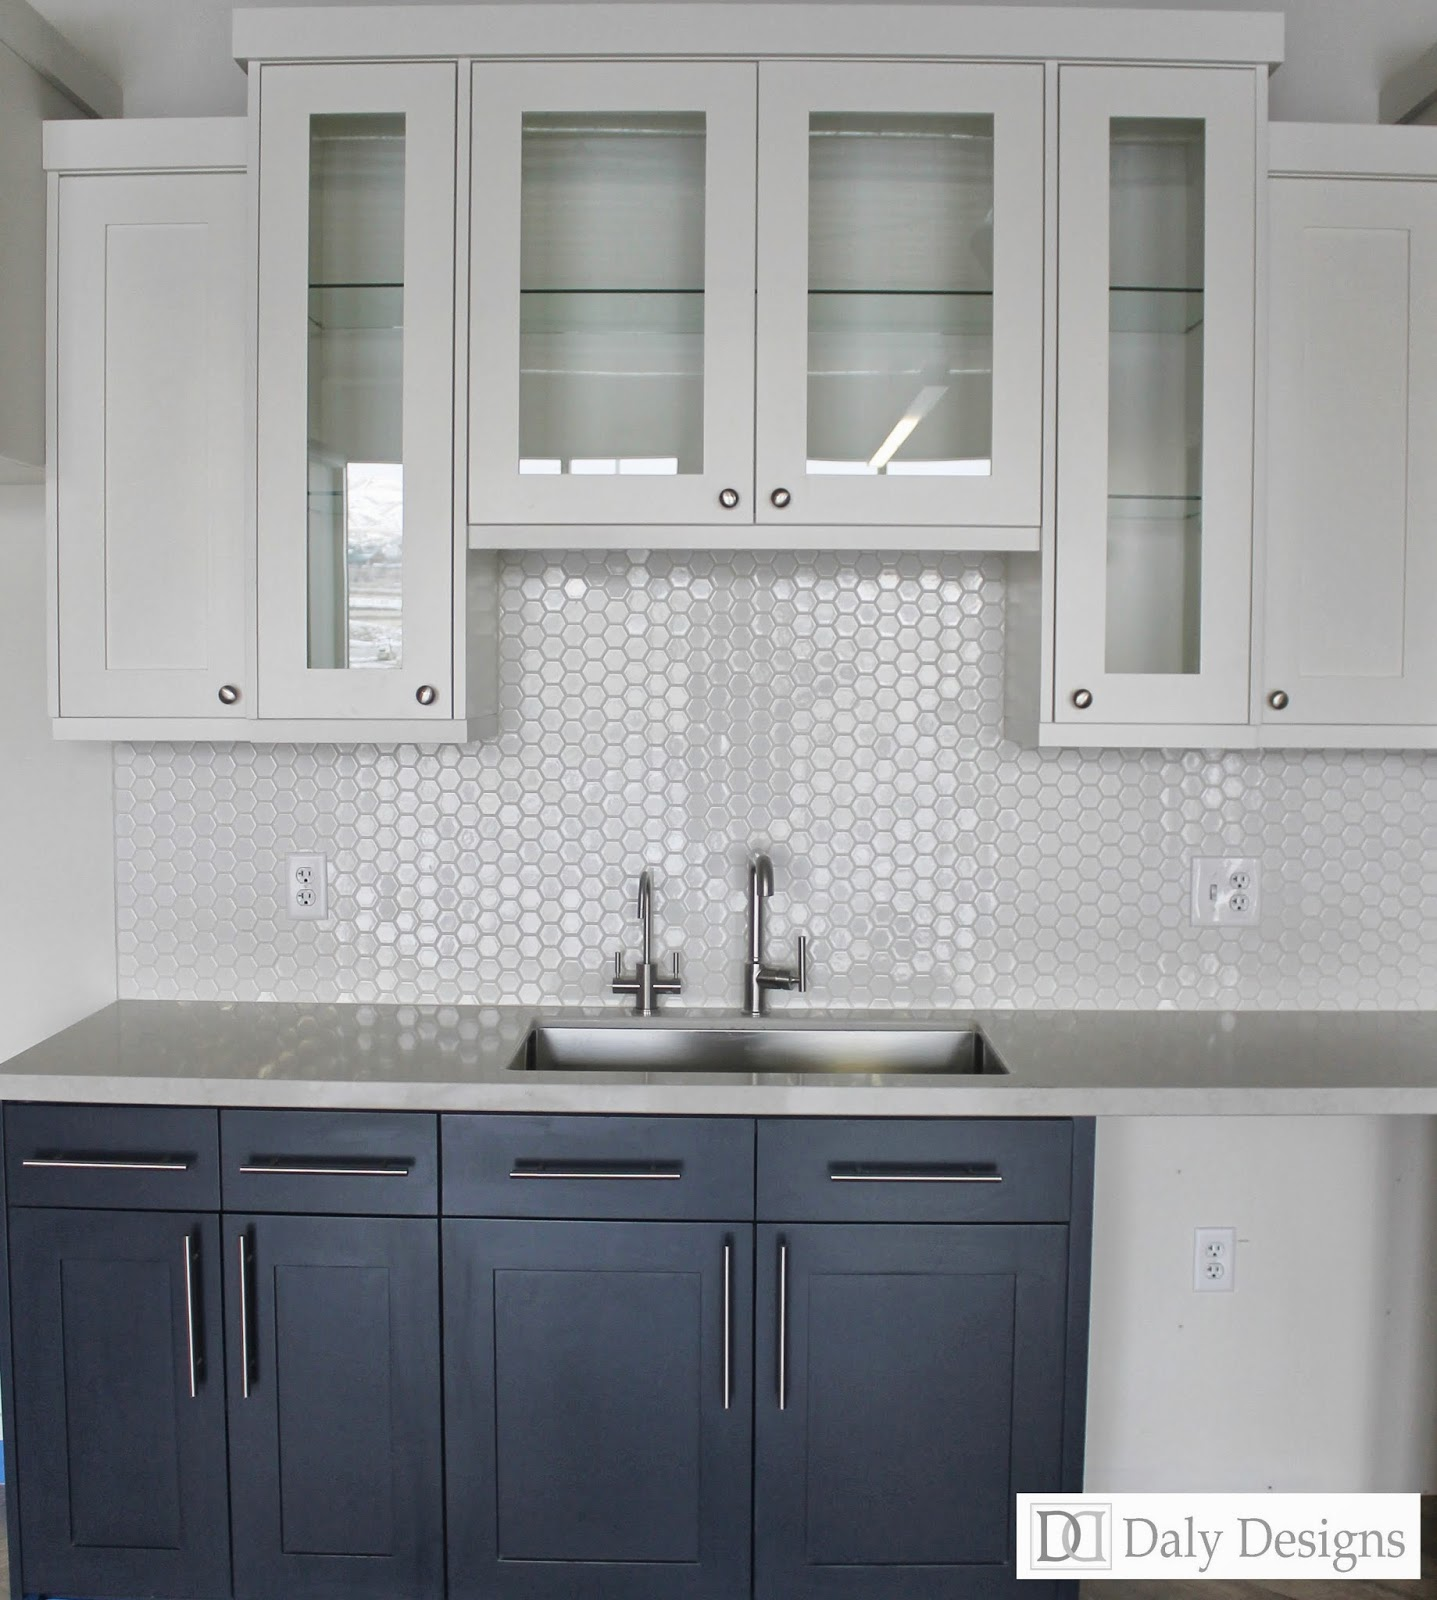 Tile Under Kitchen Cabinets: Daly Designs